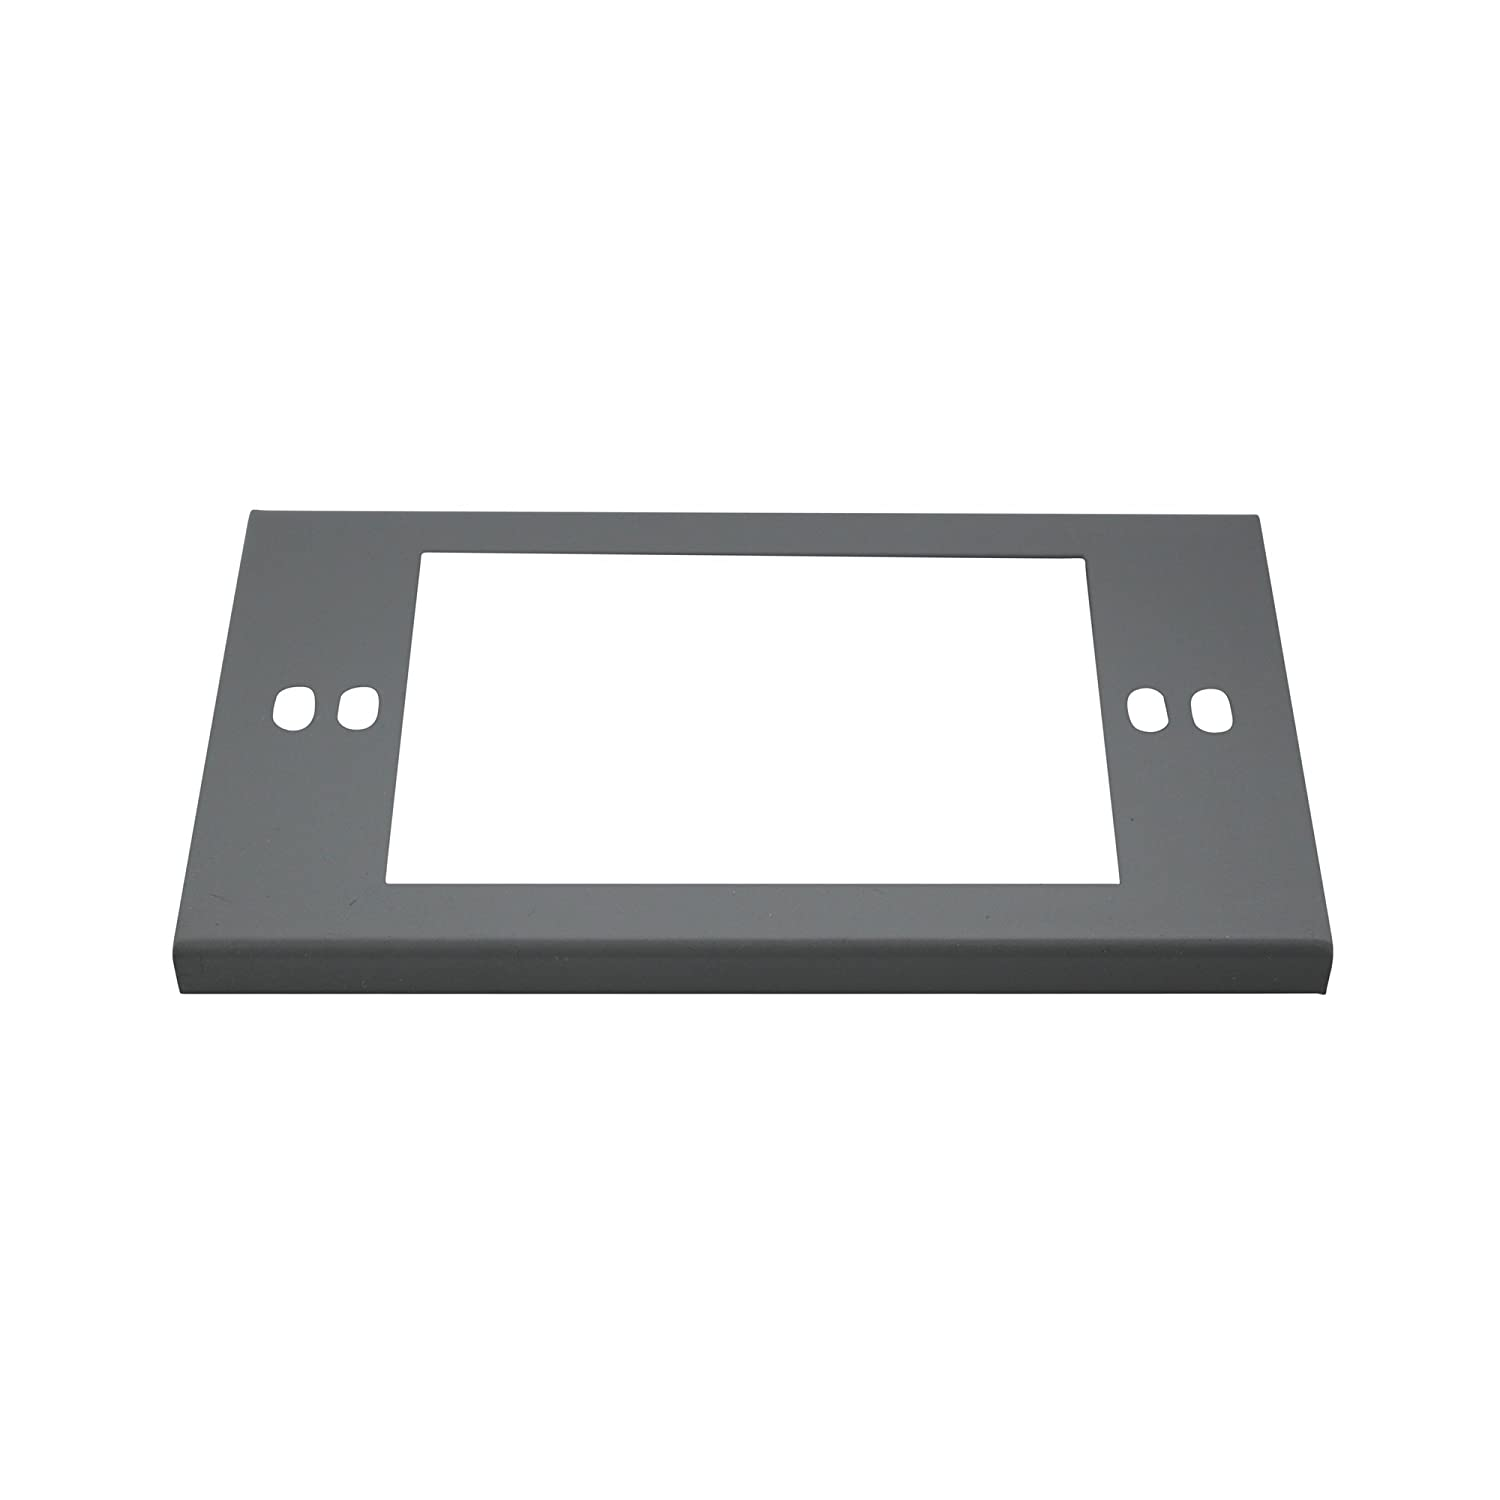 Wiremold G3051LE Device Plate Cover Surface Metal Raceway, Gray ...